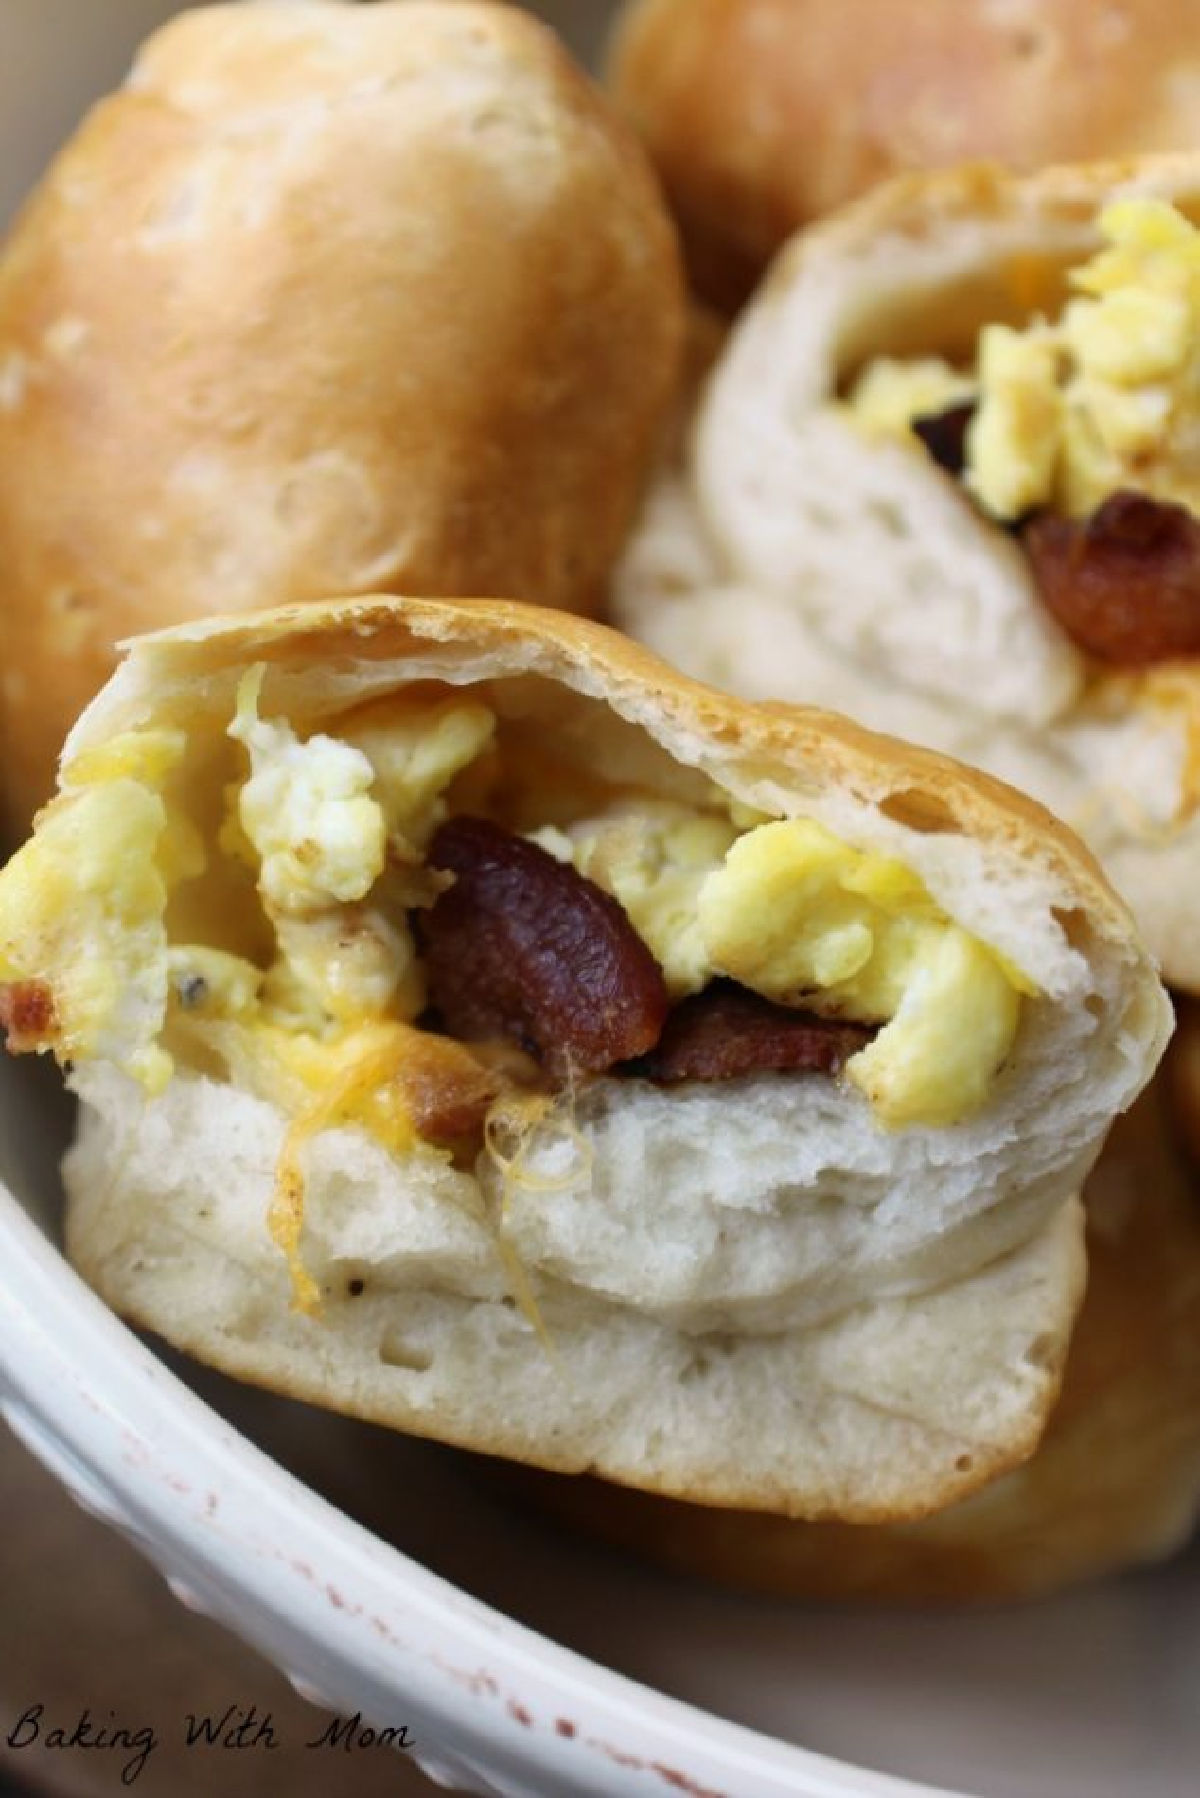 Biscuits stuffed with eggs, bacon, cheese in a cream colored bowl.